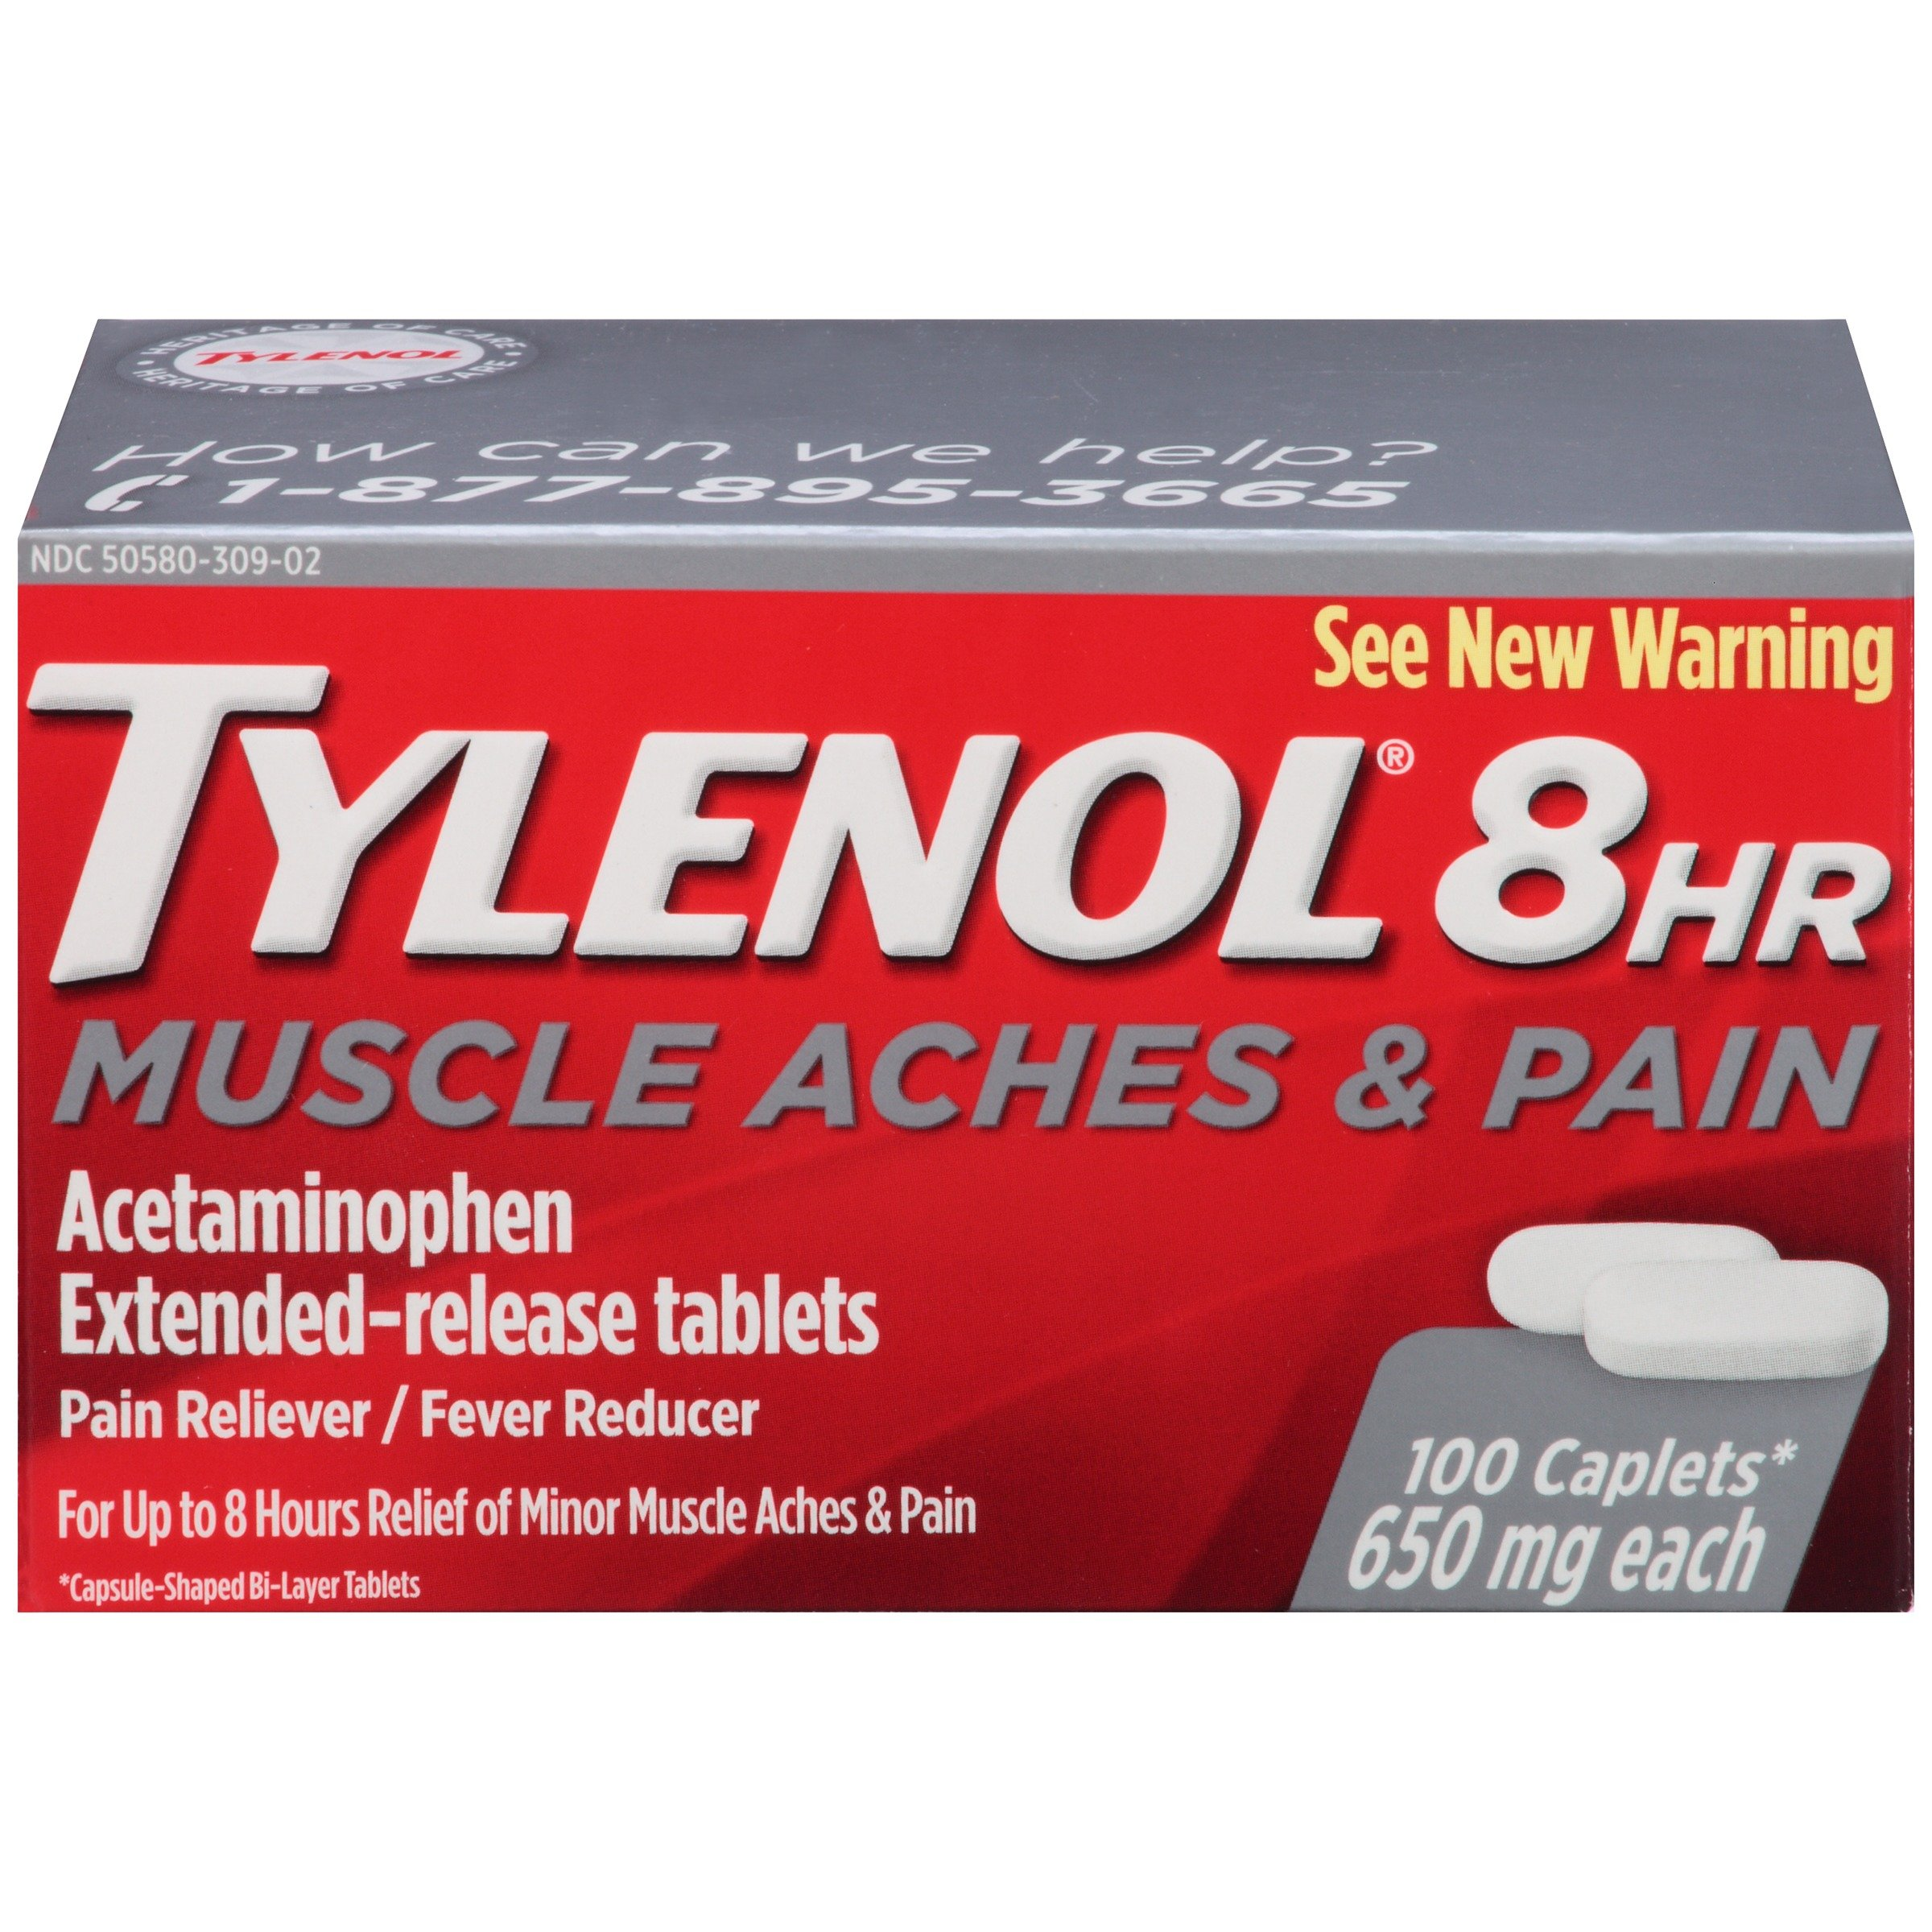 Tylenol 8 HR Muscle Aches & Pain, Pain Relief from Aches and Pain, 650 mg, 100 ct. by Tylenol